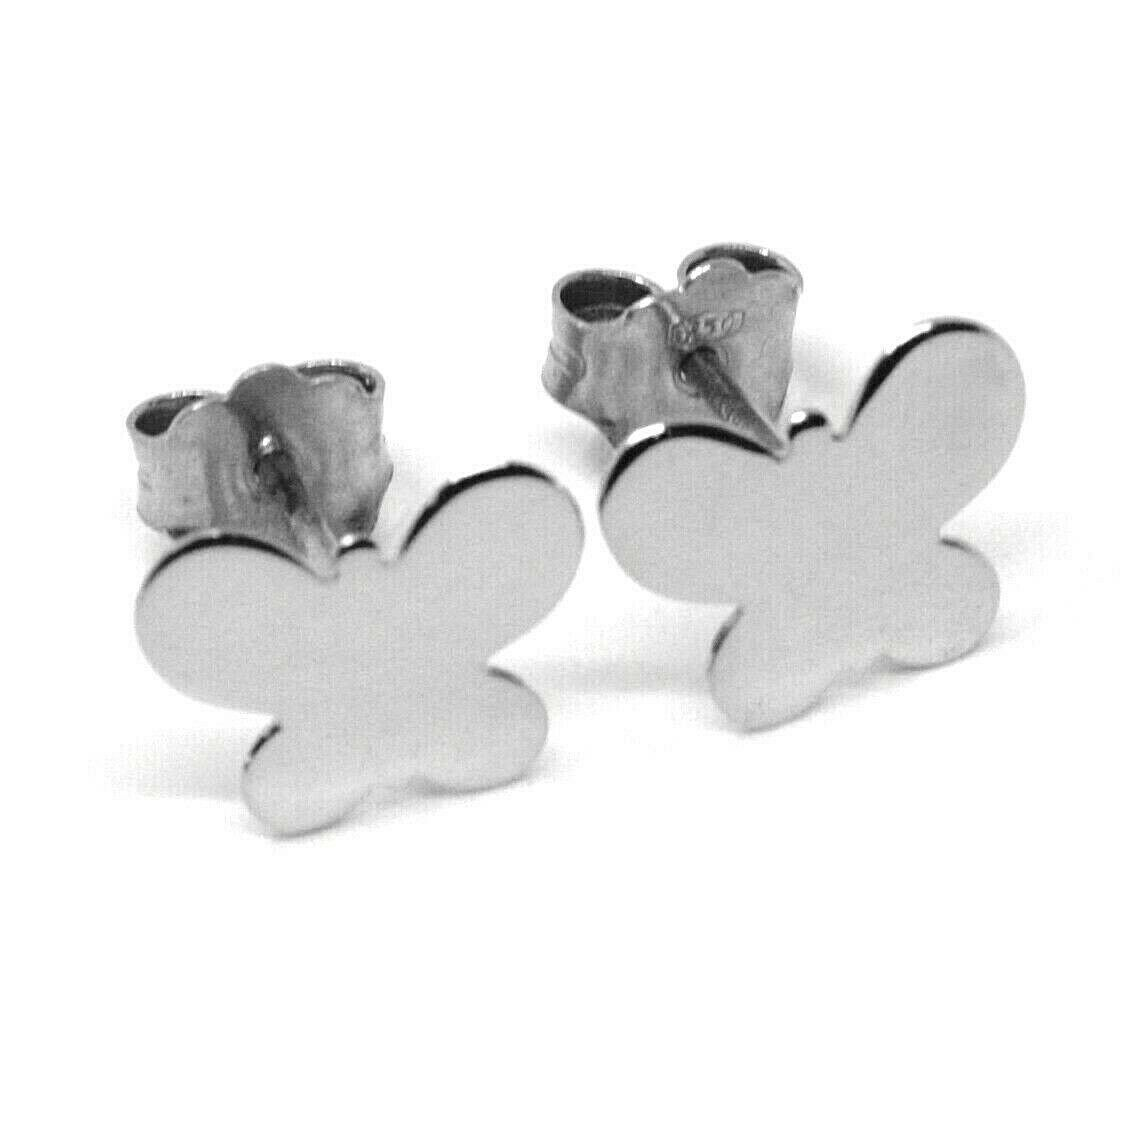 SOLID 18K WHITE GOLD EARRINGS FLAT BUTTERFLY, SHINY, SMOOTH, 8x10 MM